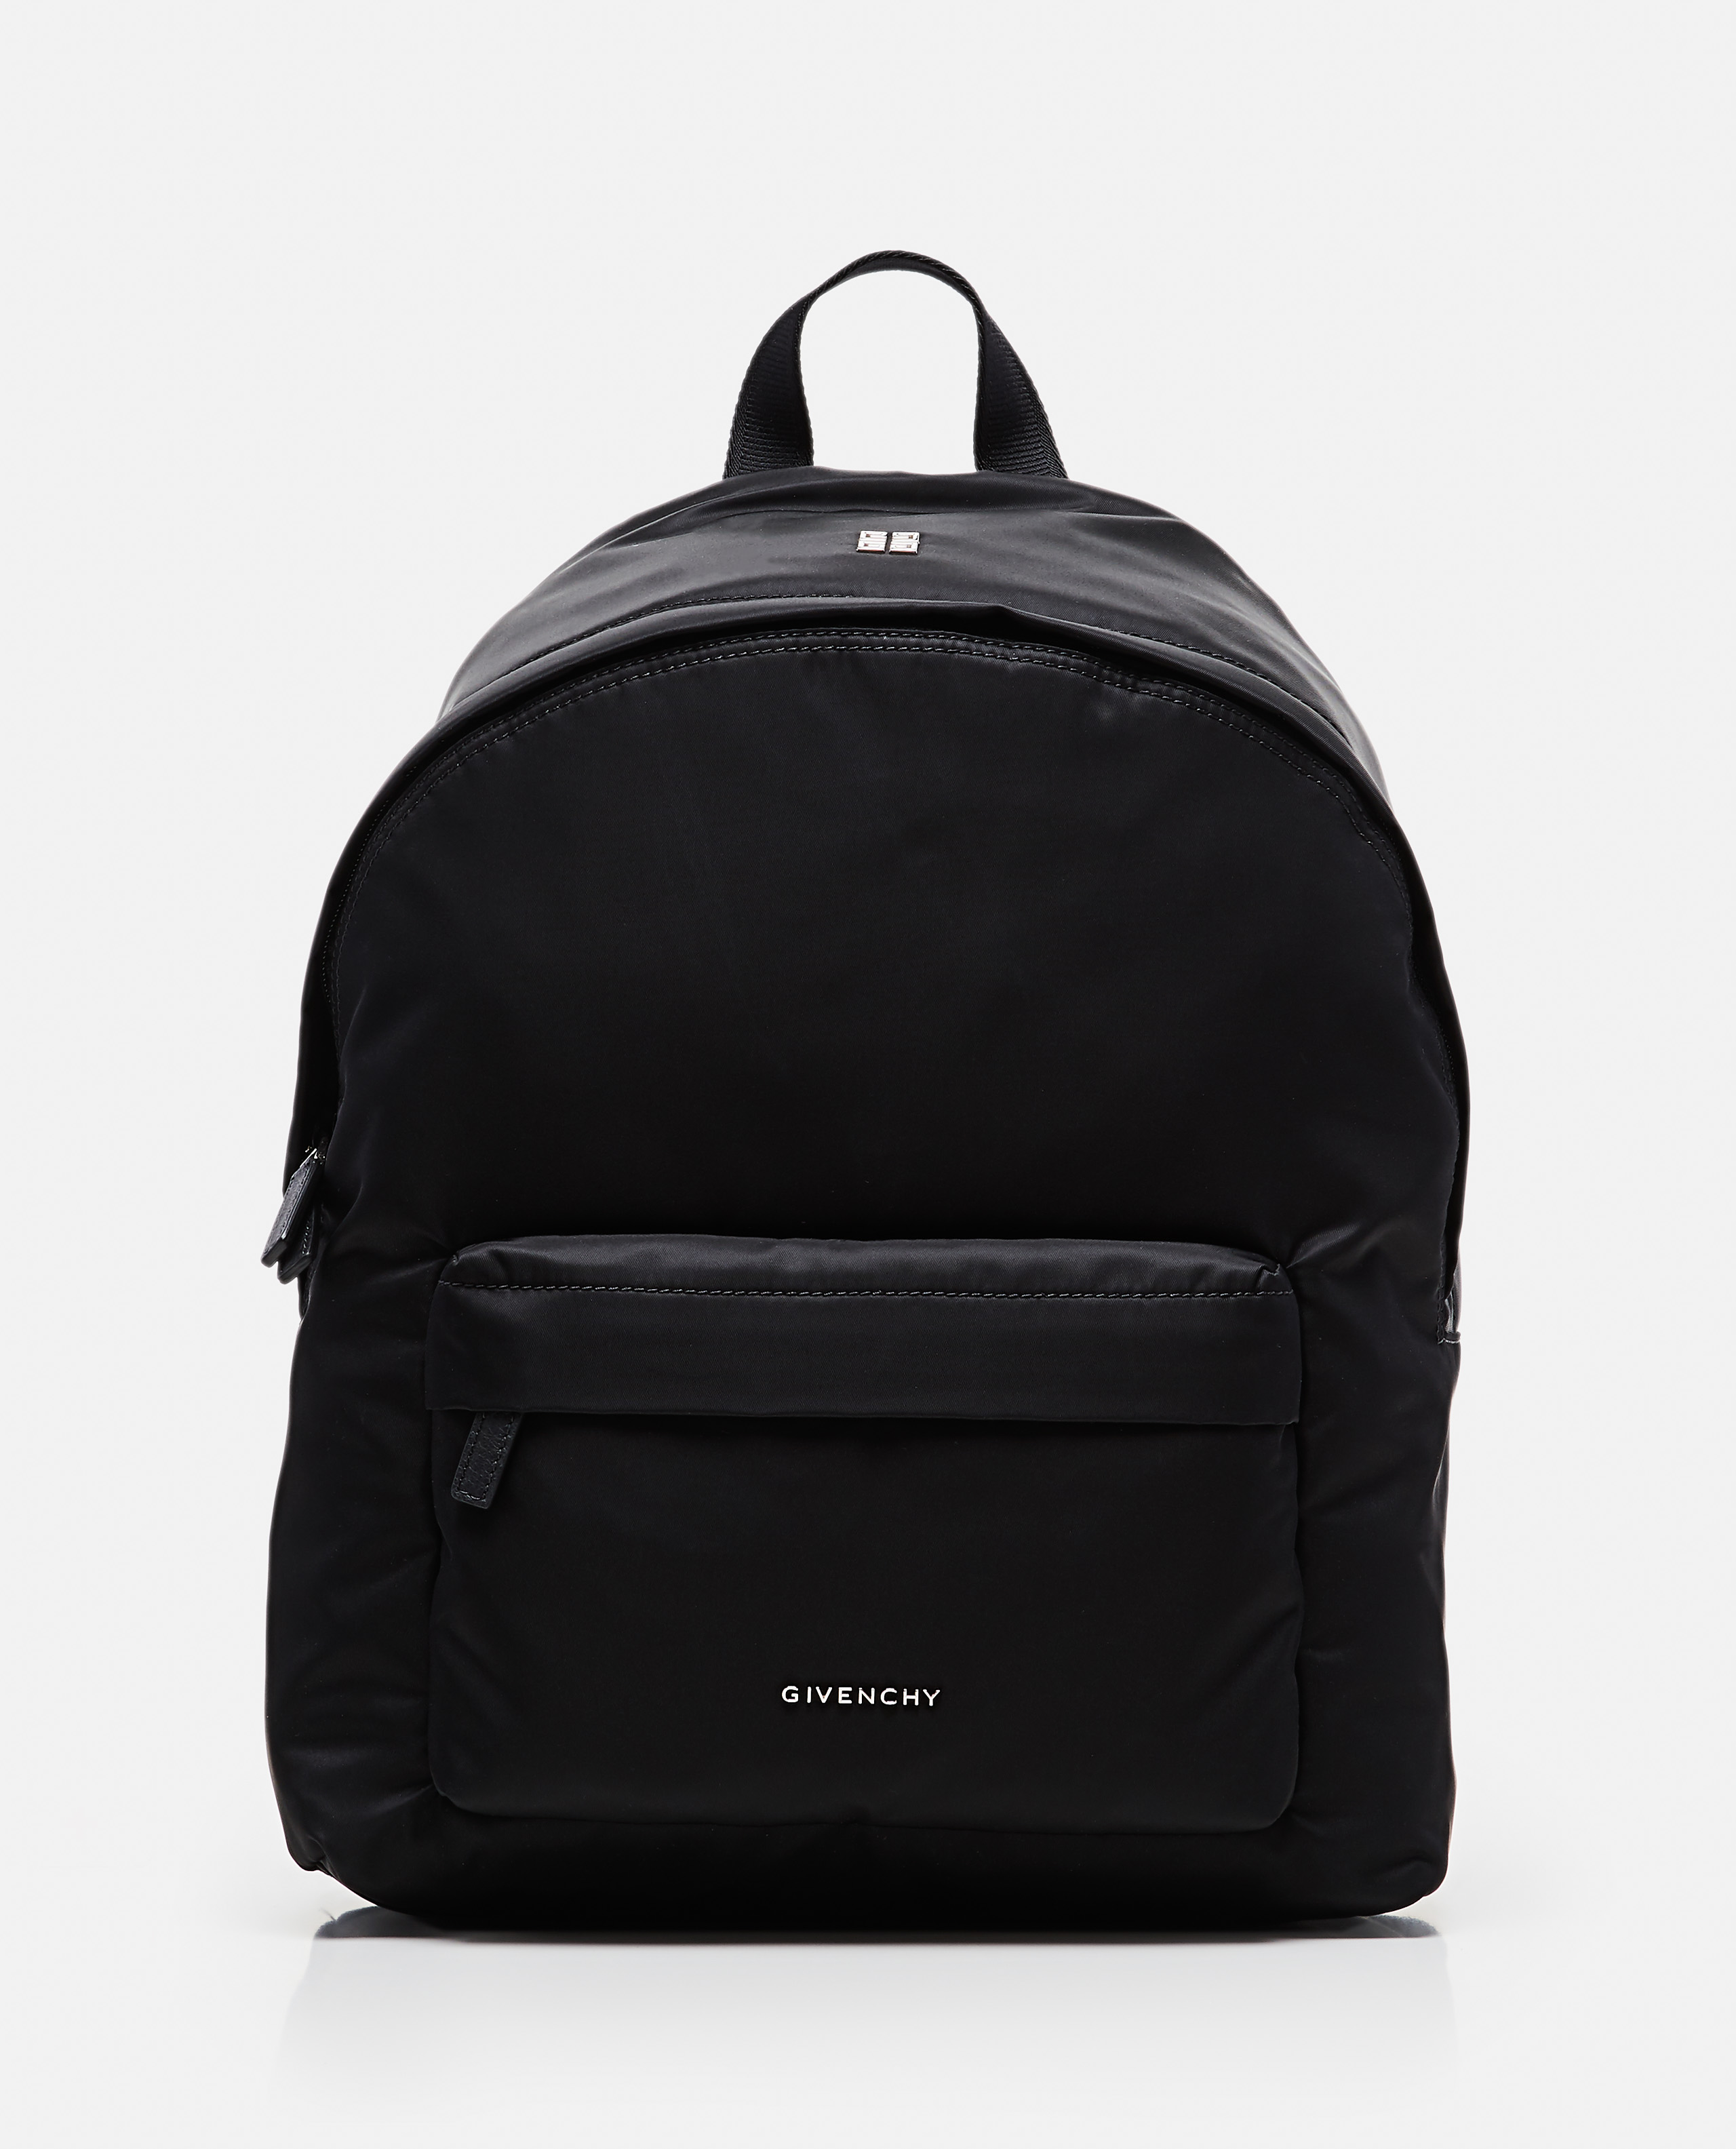 GIVENCHY GIVENCHY ESSENTIAL  U NYLON BACKPACK